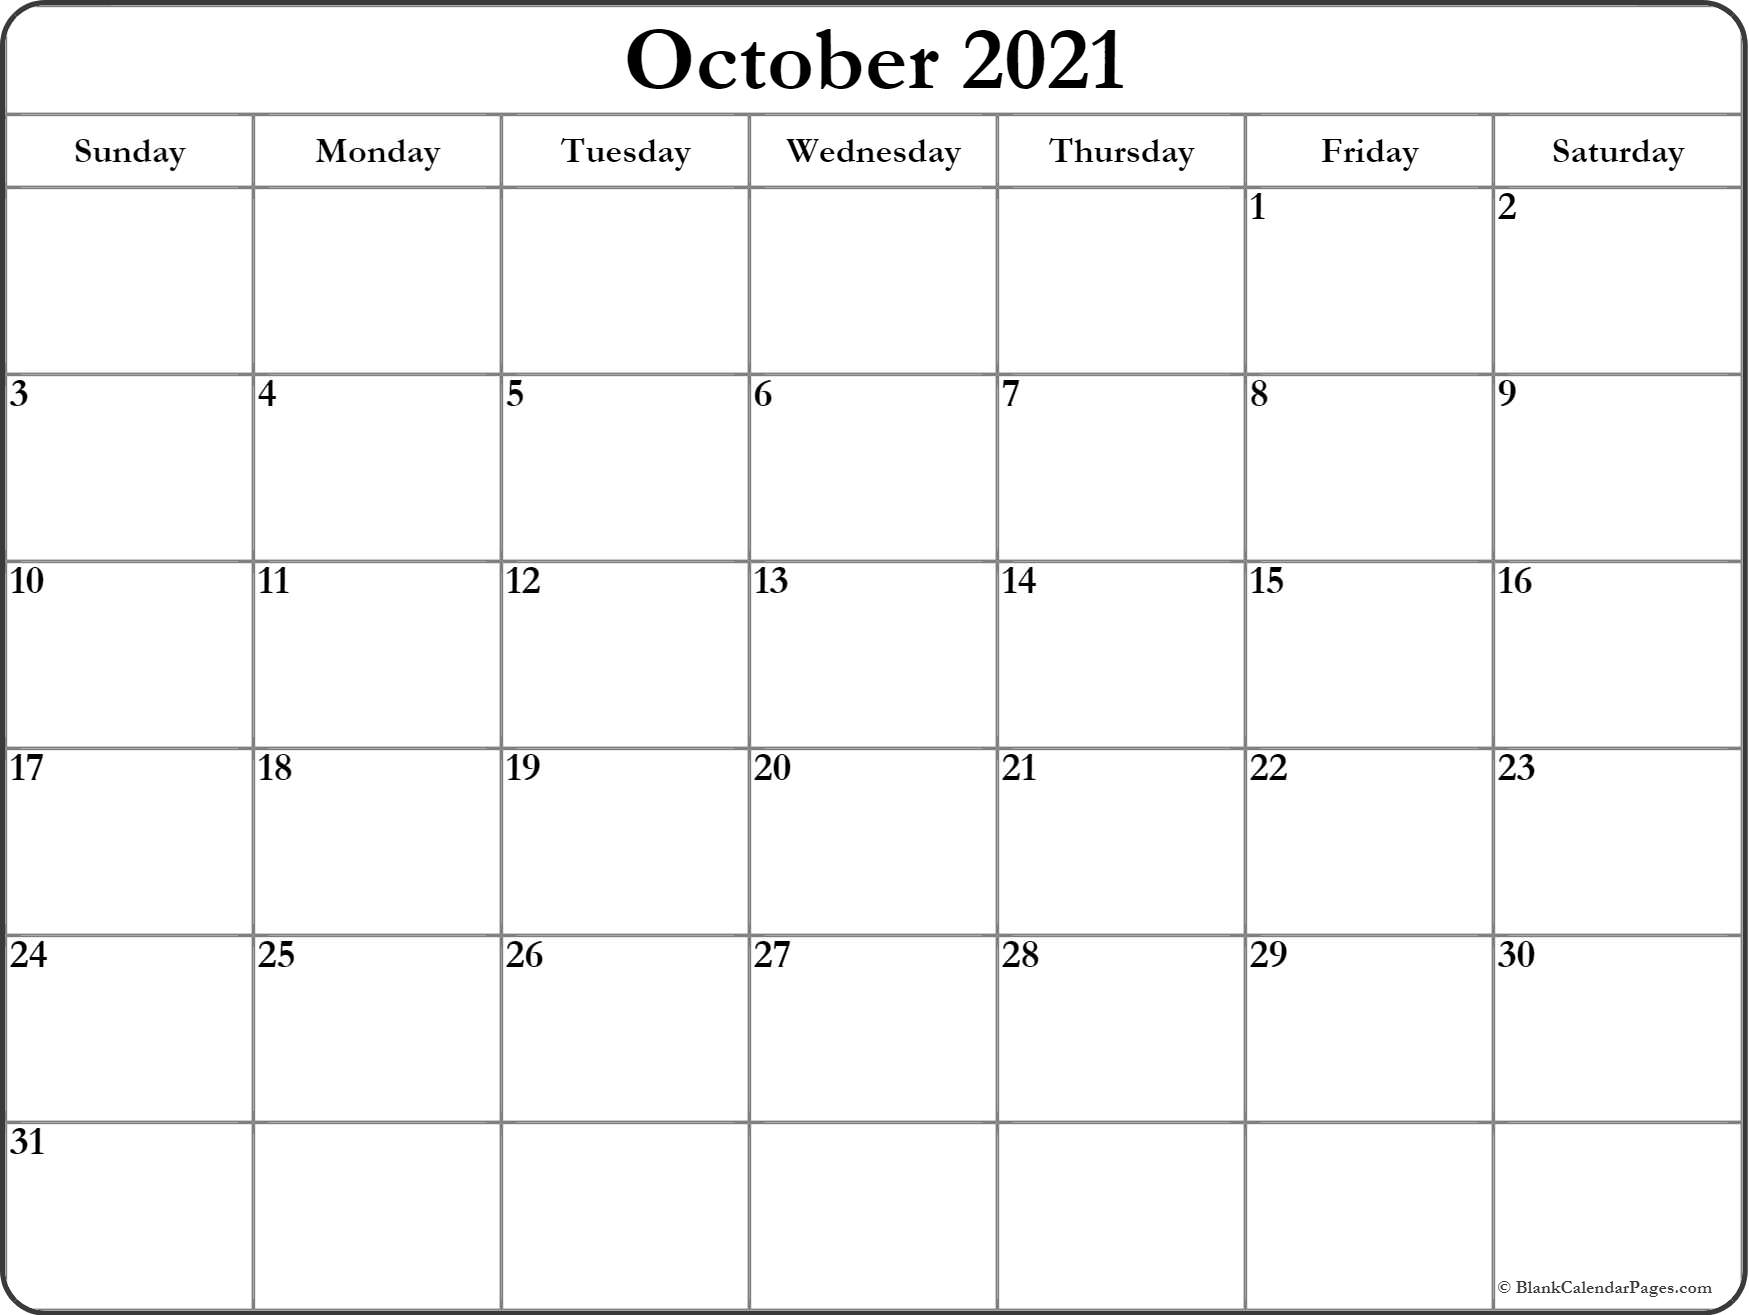 October calendar 2021 printable and free blank calendar